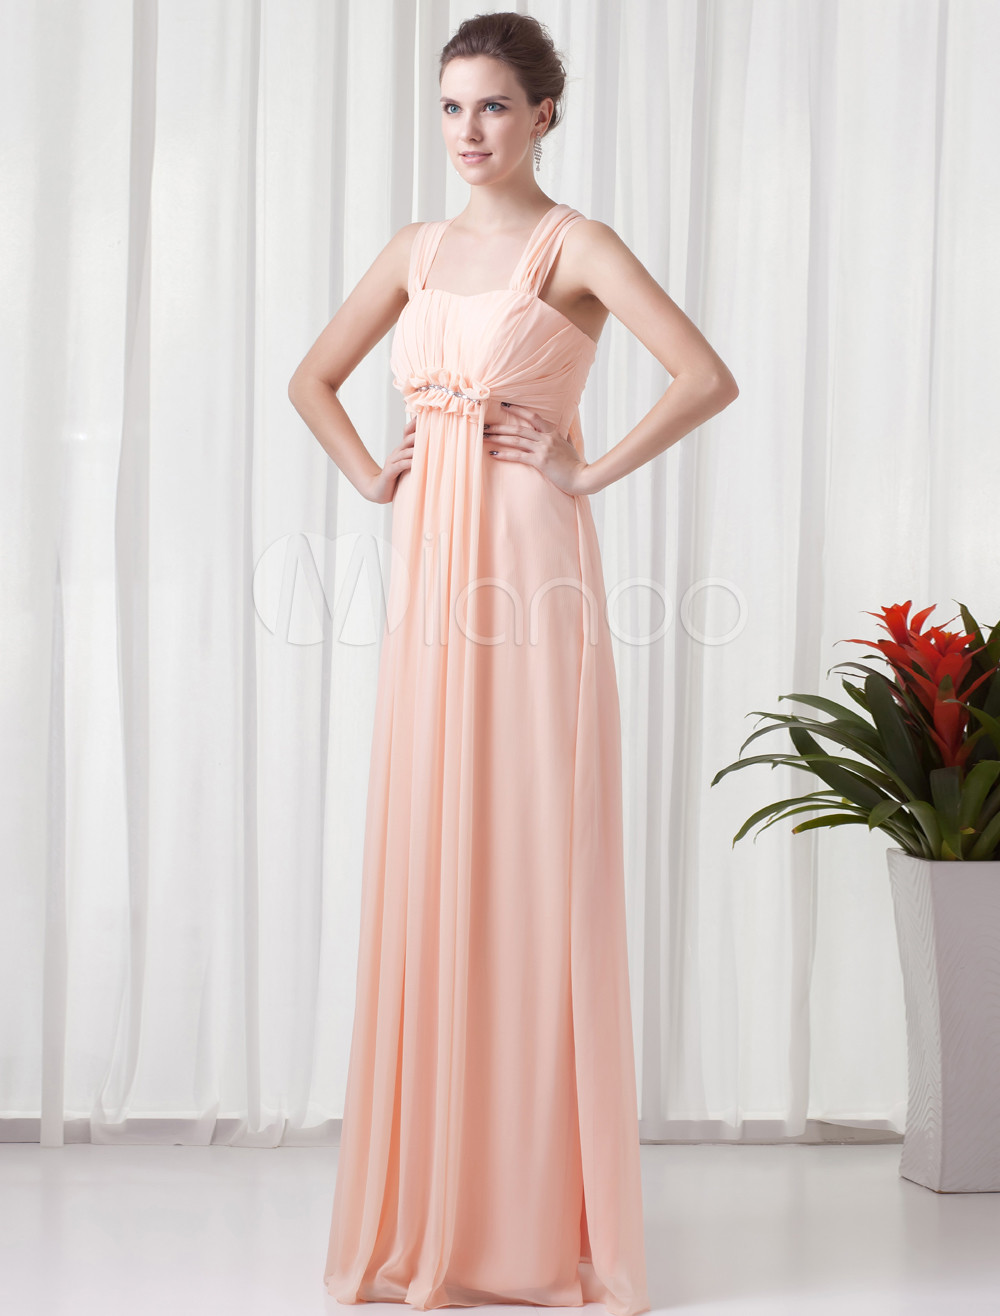 Sheath Pink Chiffon Ruched Square Neck Floor-Length Wedding Bridesmaid Dress